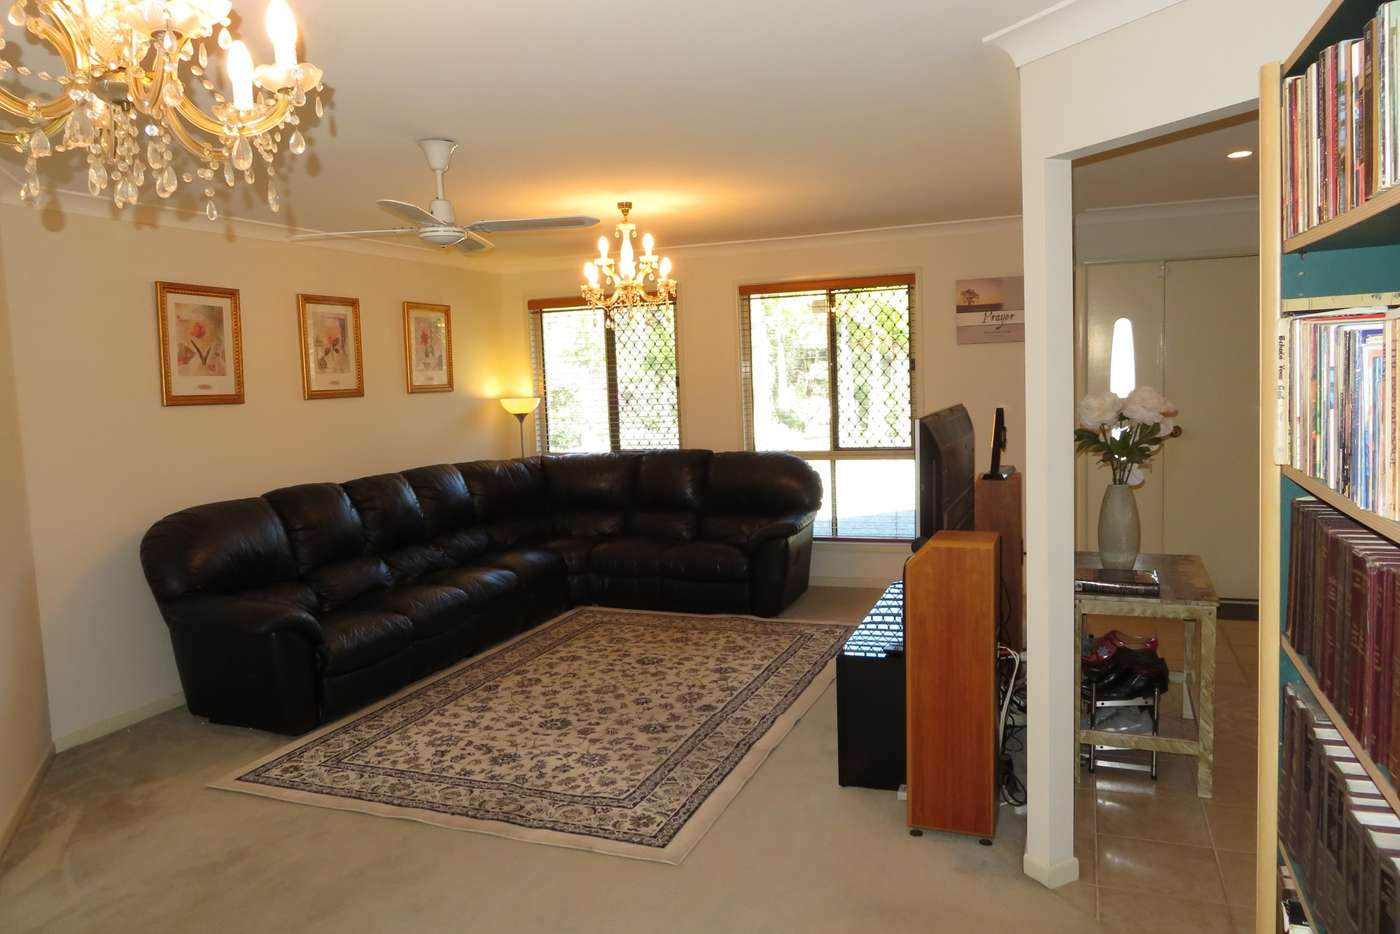 Sixth view of Homely house listing, 44 Birdwood Court, Elimbah QLD 4516